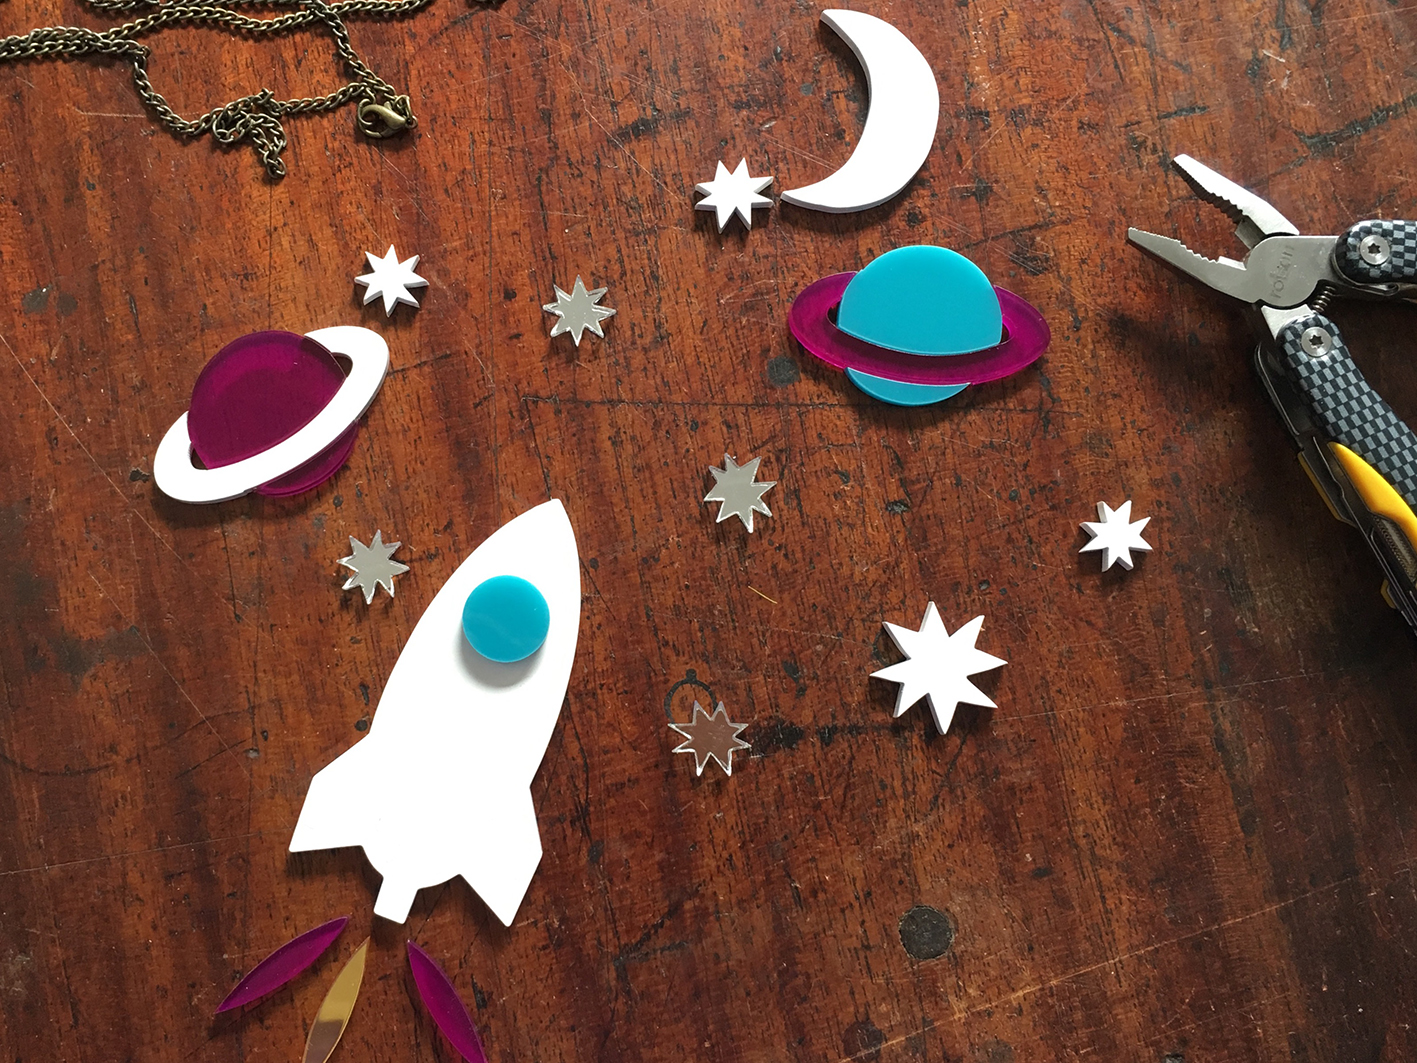 Make Good: Perspex Jewellery